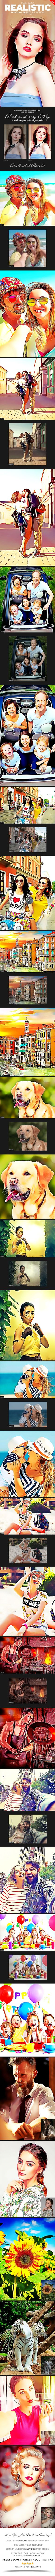 #Realistic Painting Effect Photoshop Action - #Photo #Effects #Actions